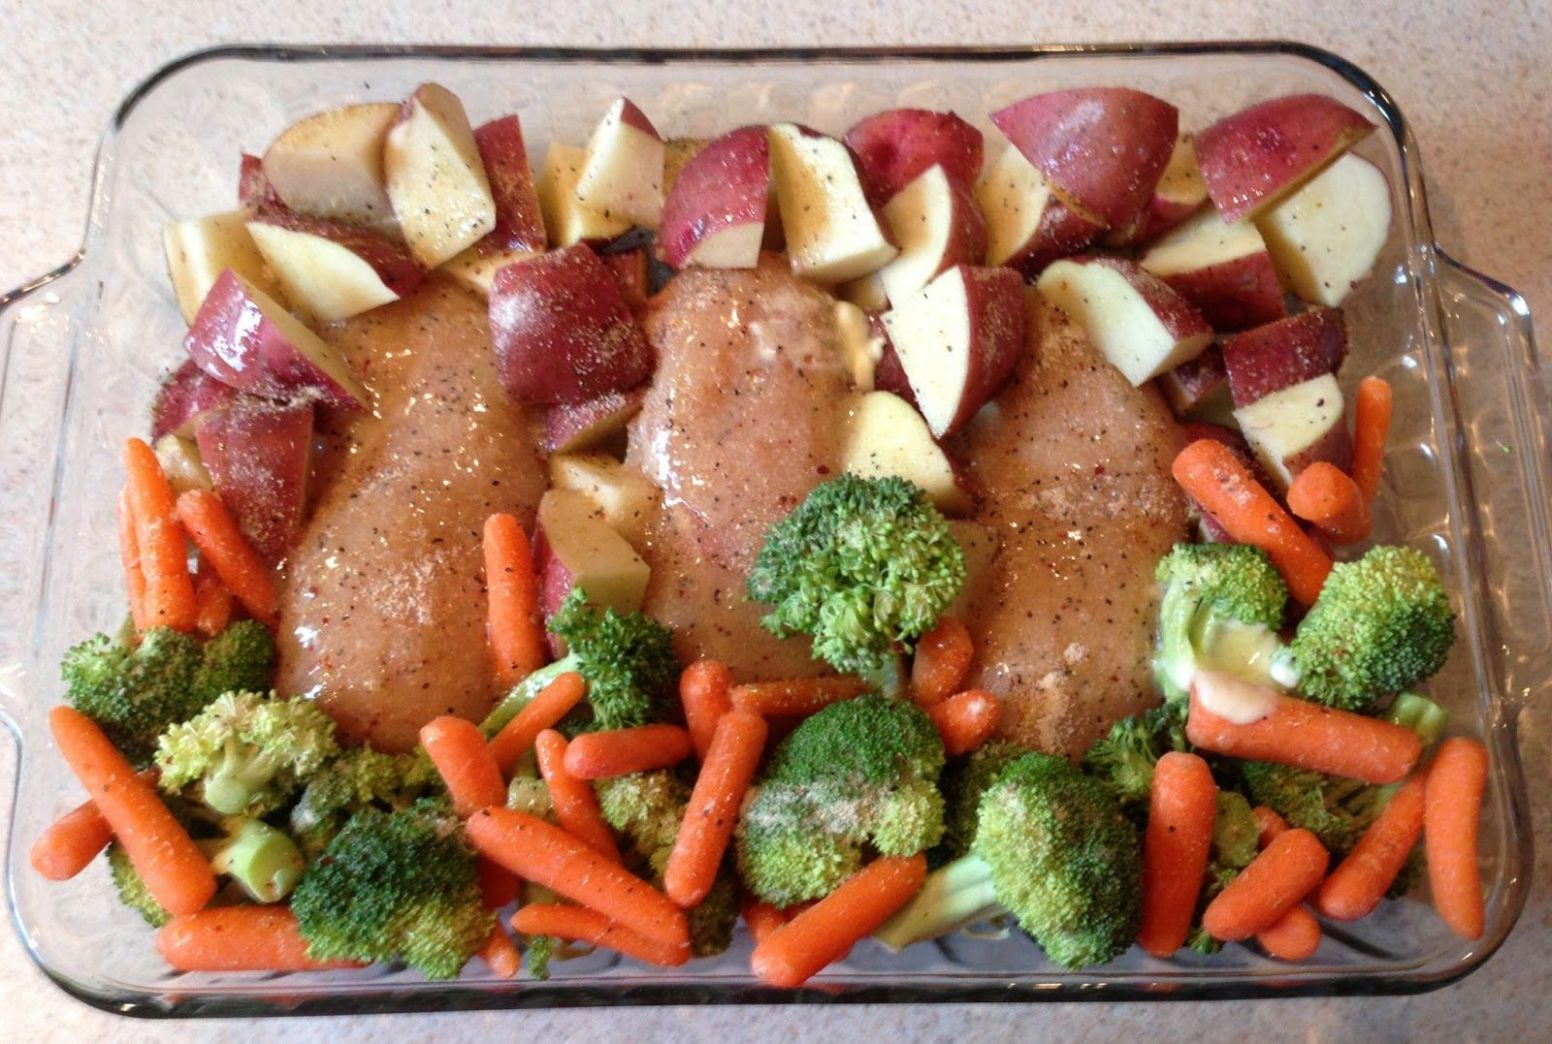 Easy Chicken Recipe with Skinless, Boneless Breast Meat